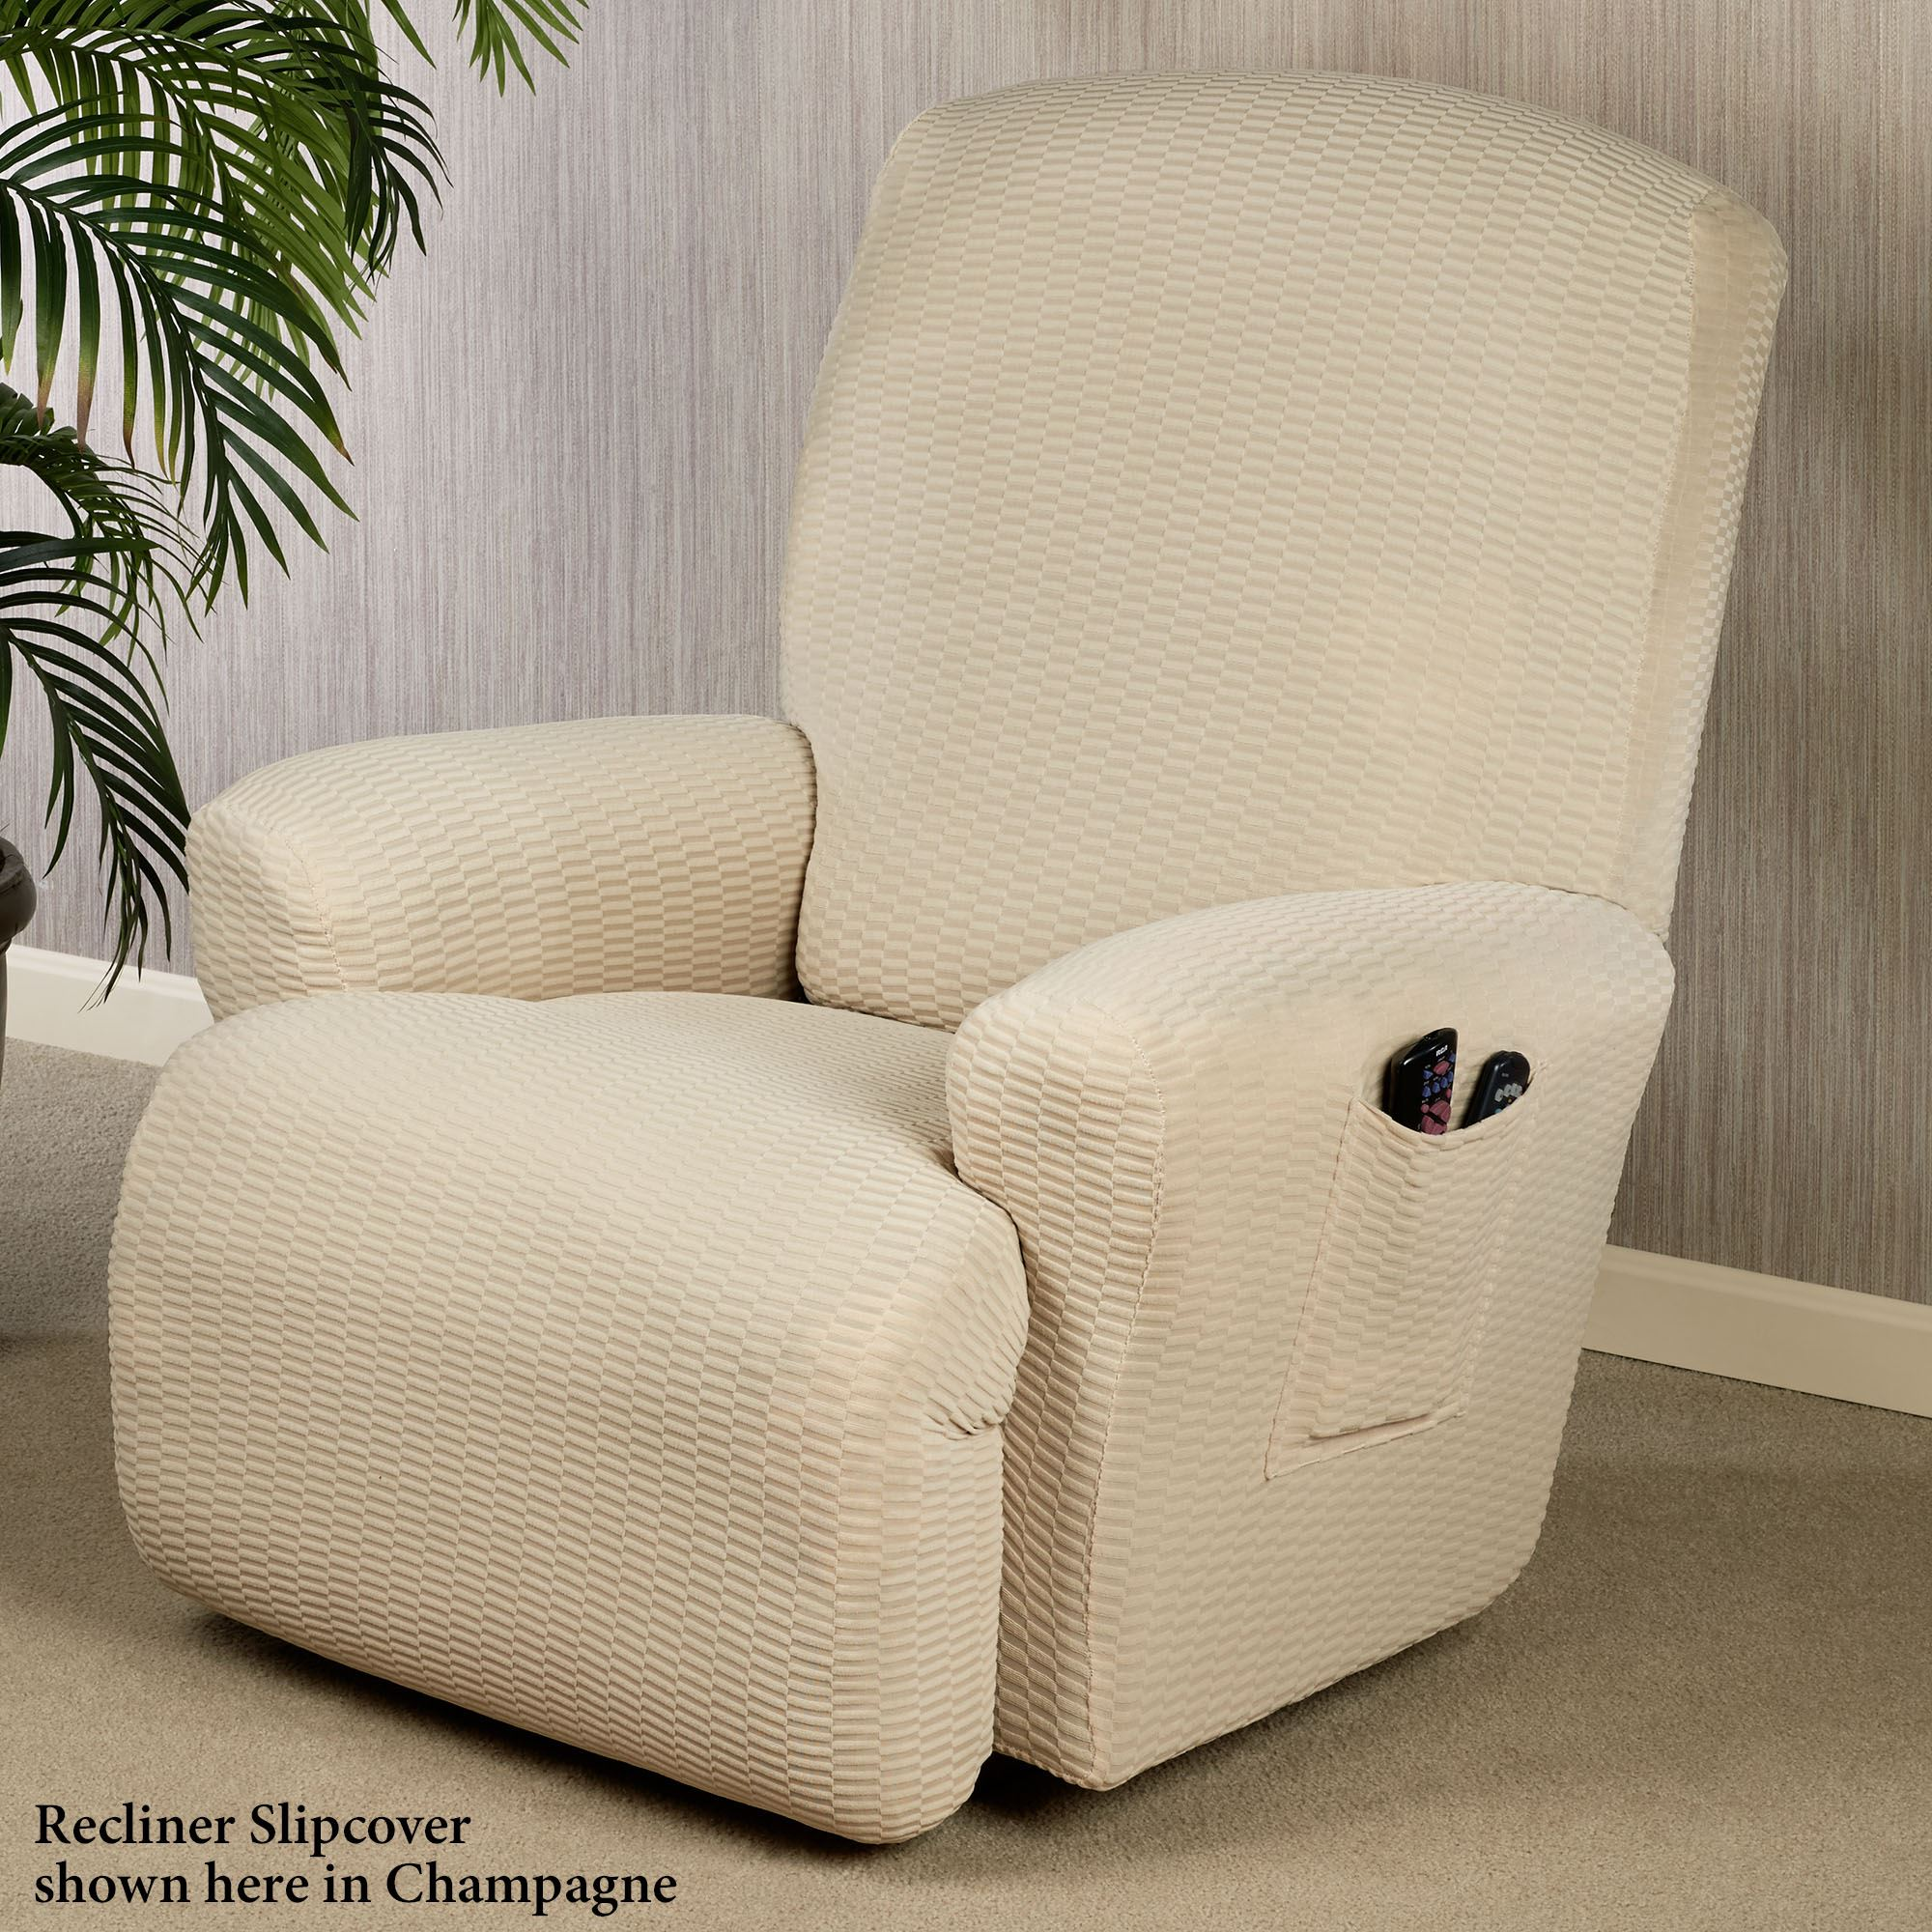 newport jumbo recliner stretch recliners p slipcover slipcovers for